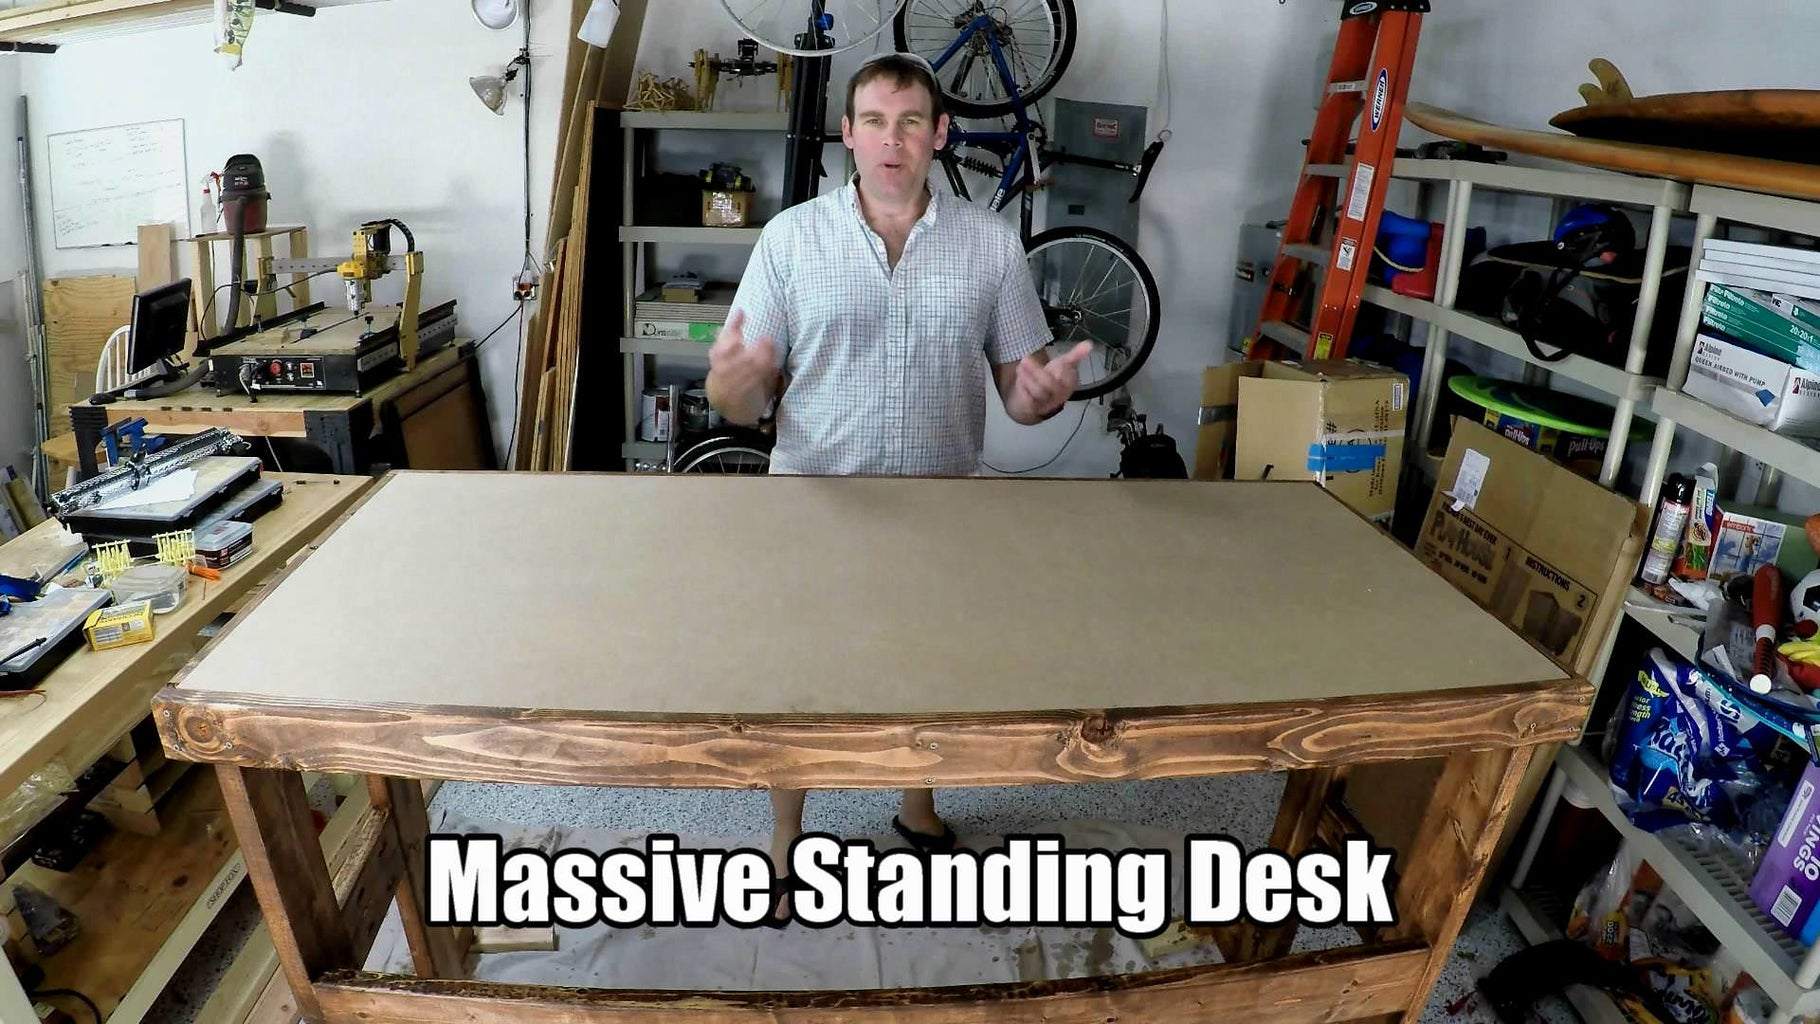 Massive Standing Desk With 2x4s and MDF Surface